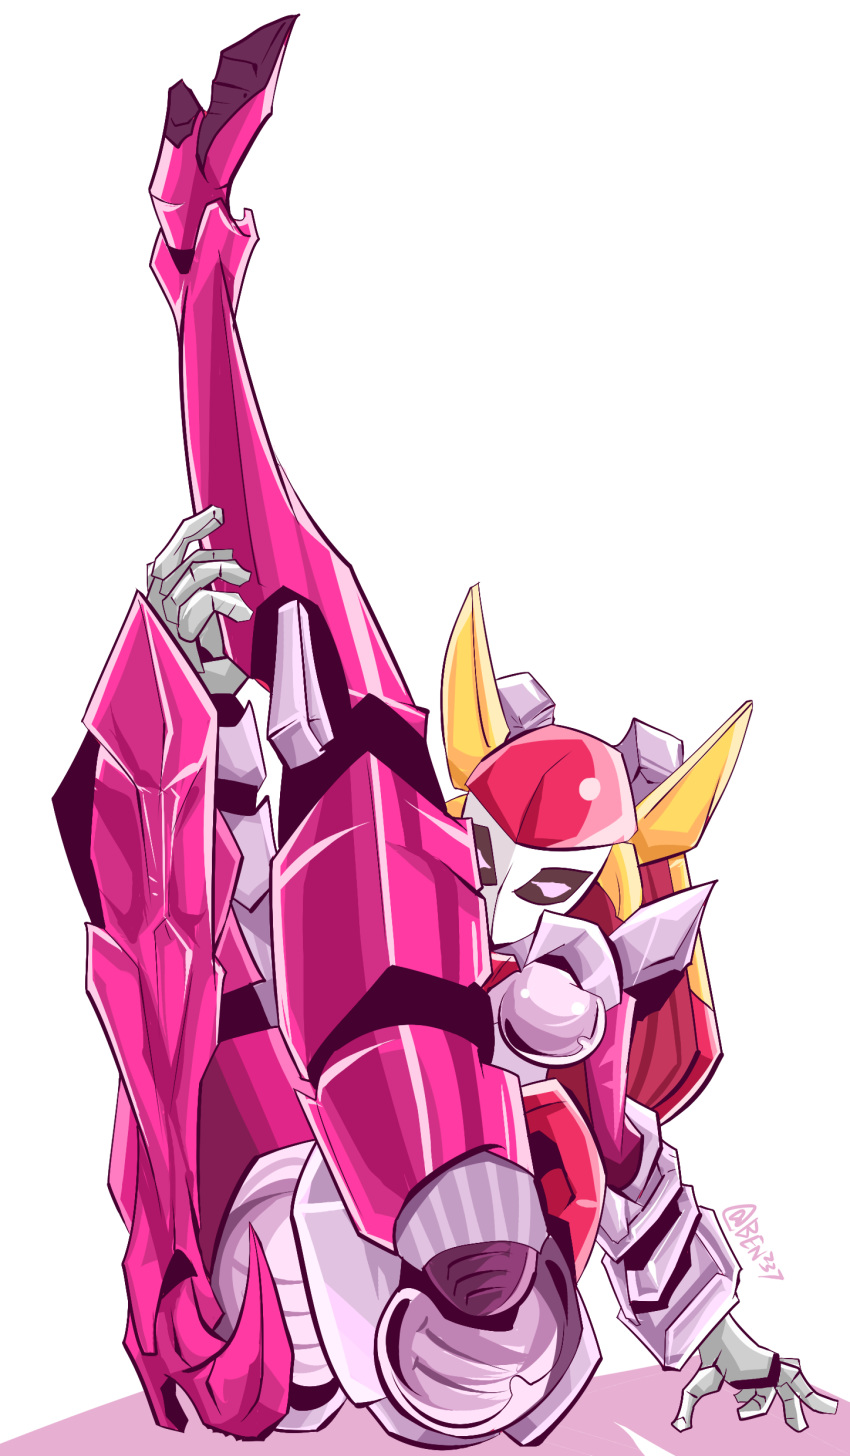 kenzen-robo-daimidaler Who is mangle from five nights at freddy's